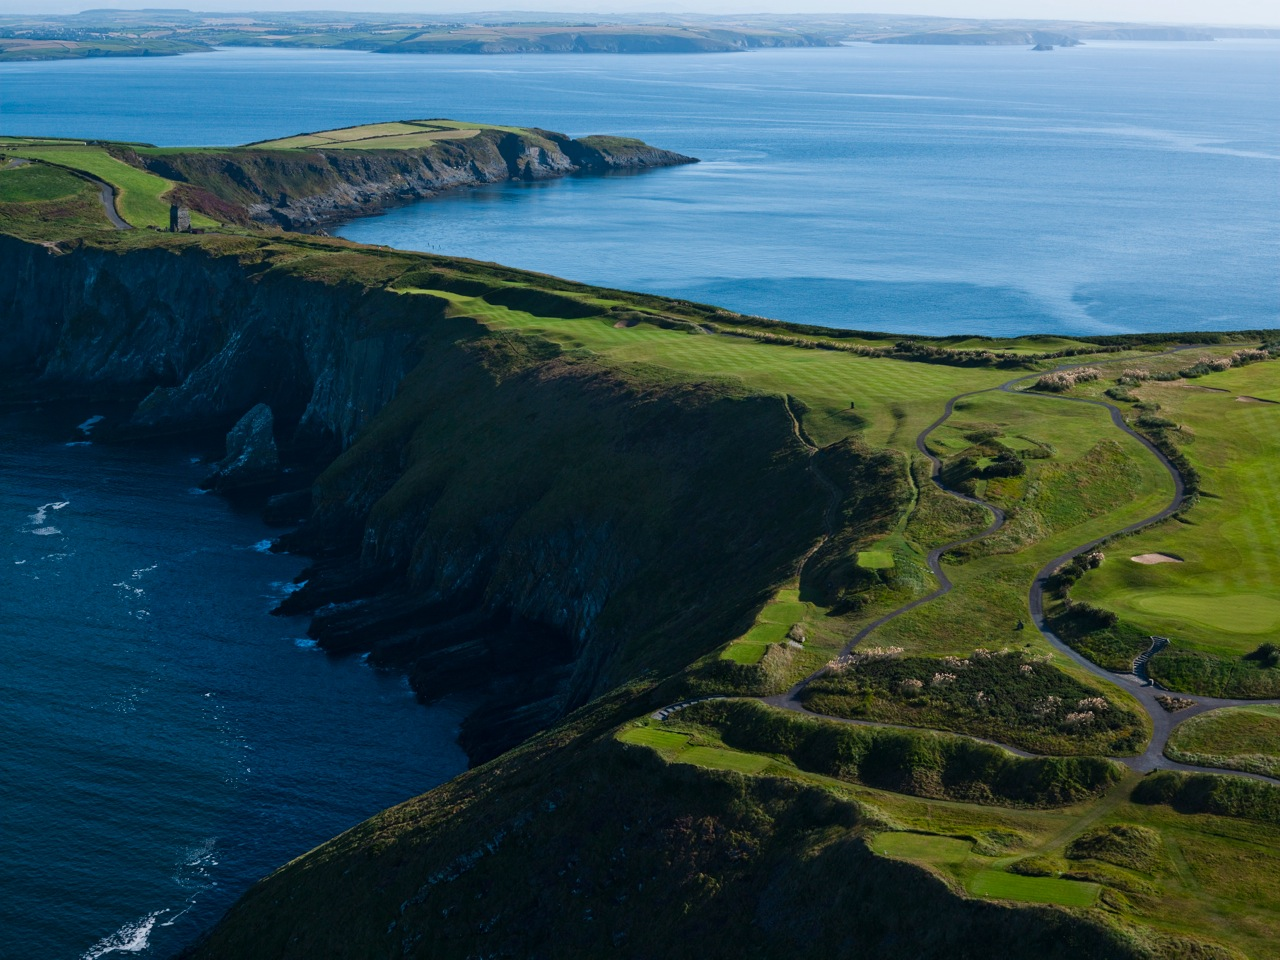 GolfPorn: Old Head of Kinsale, Ireland